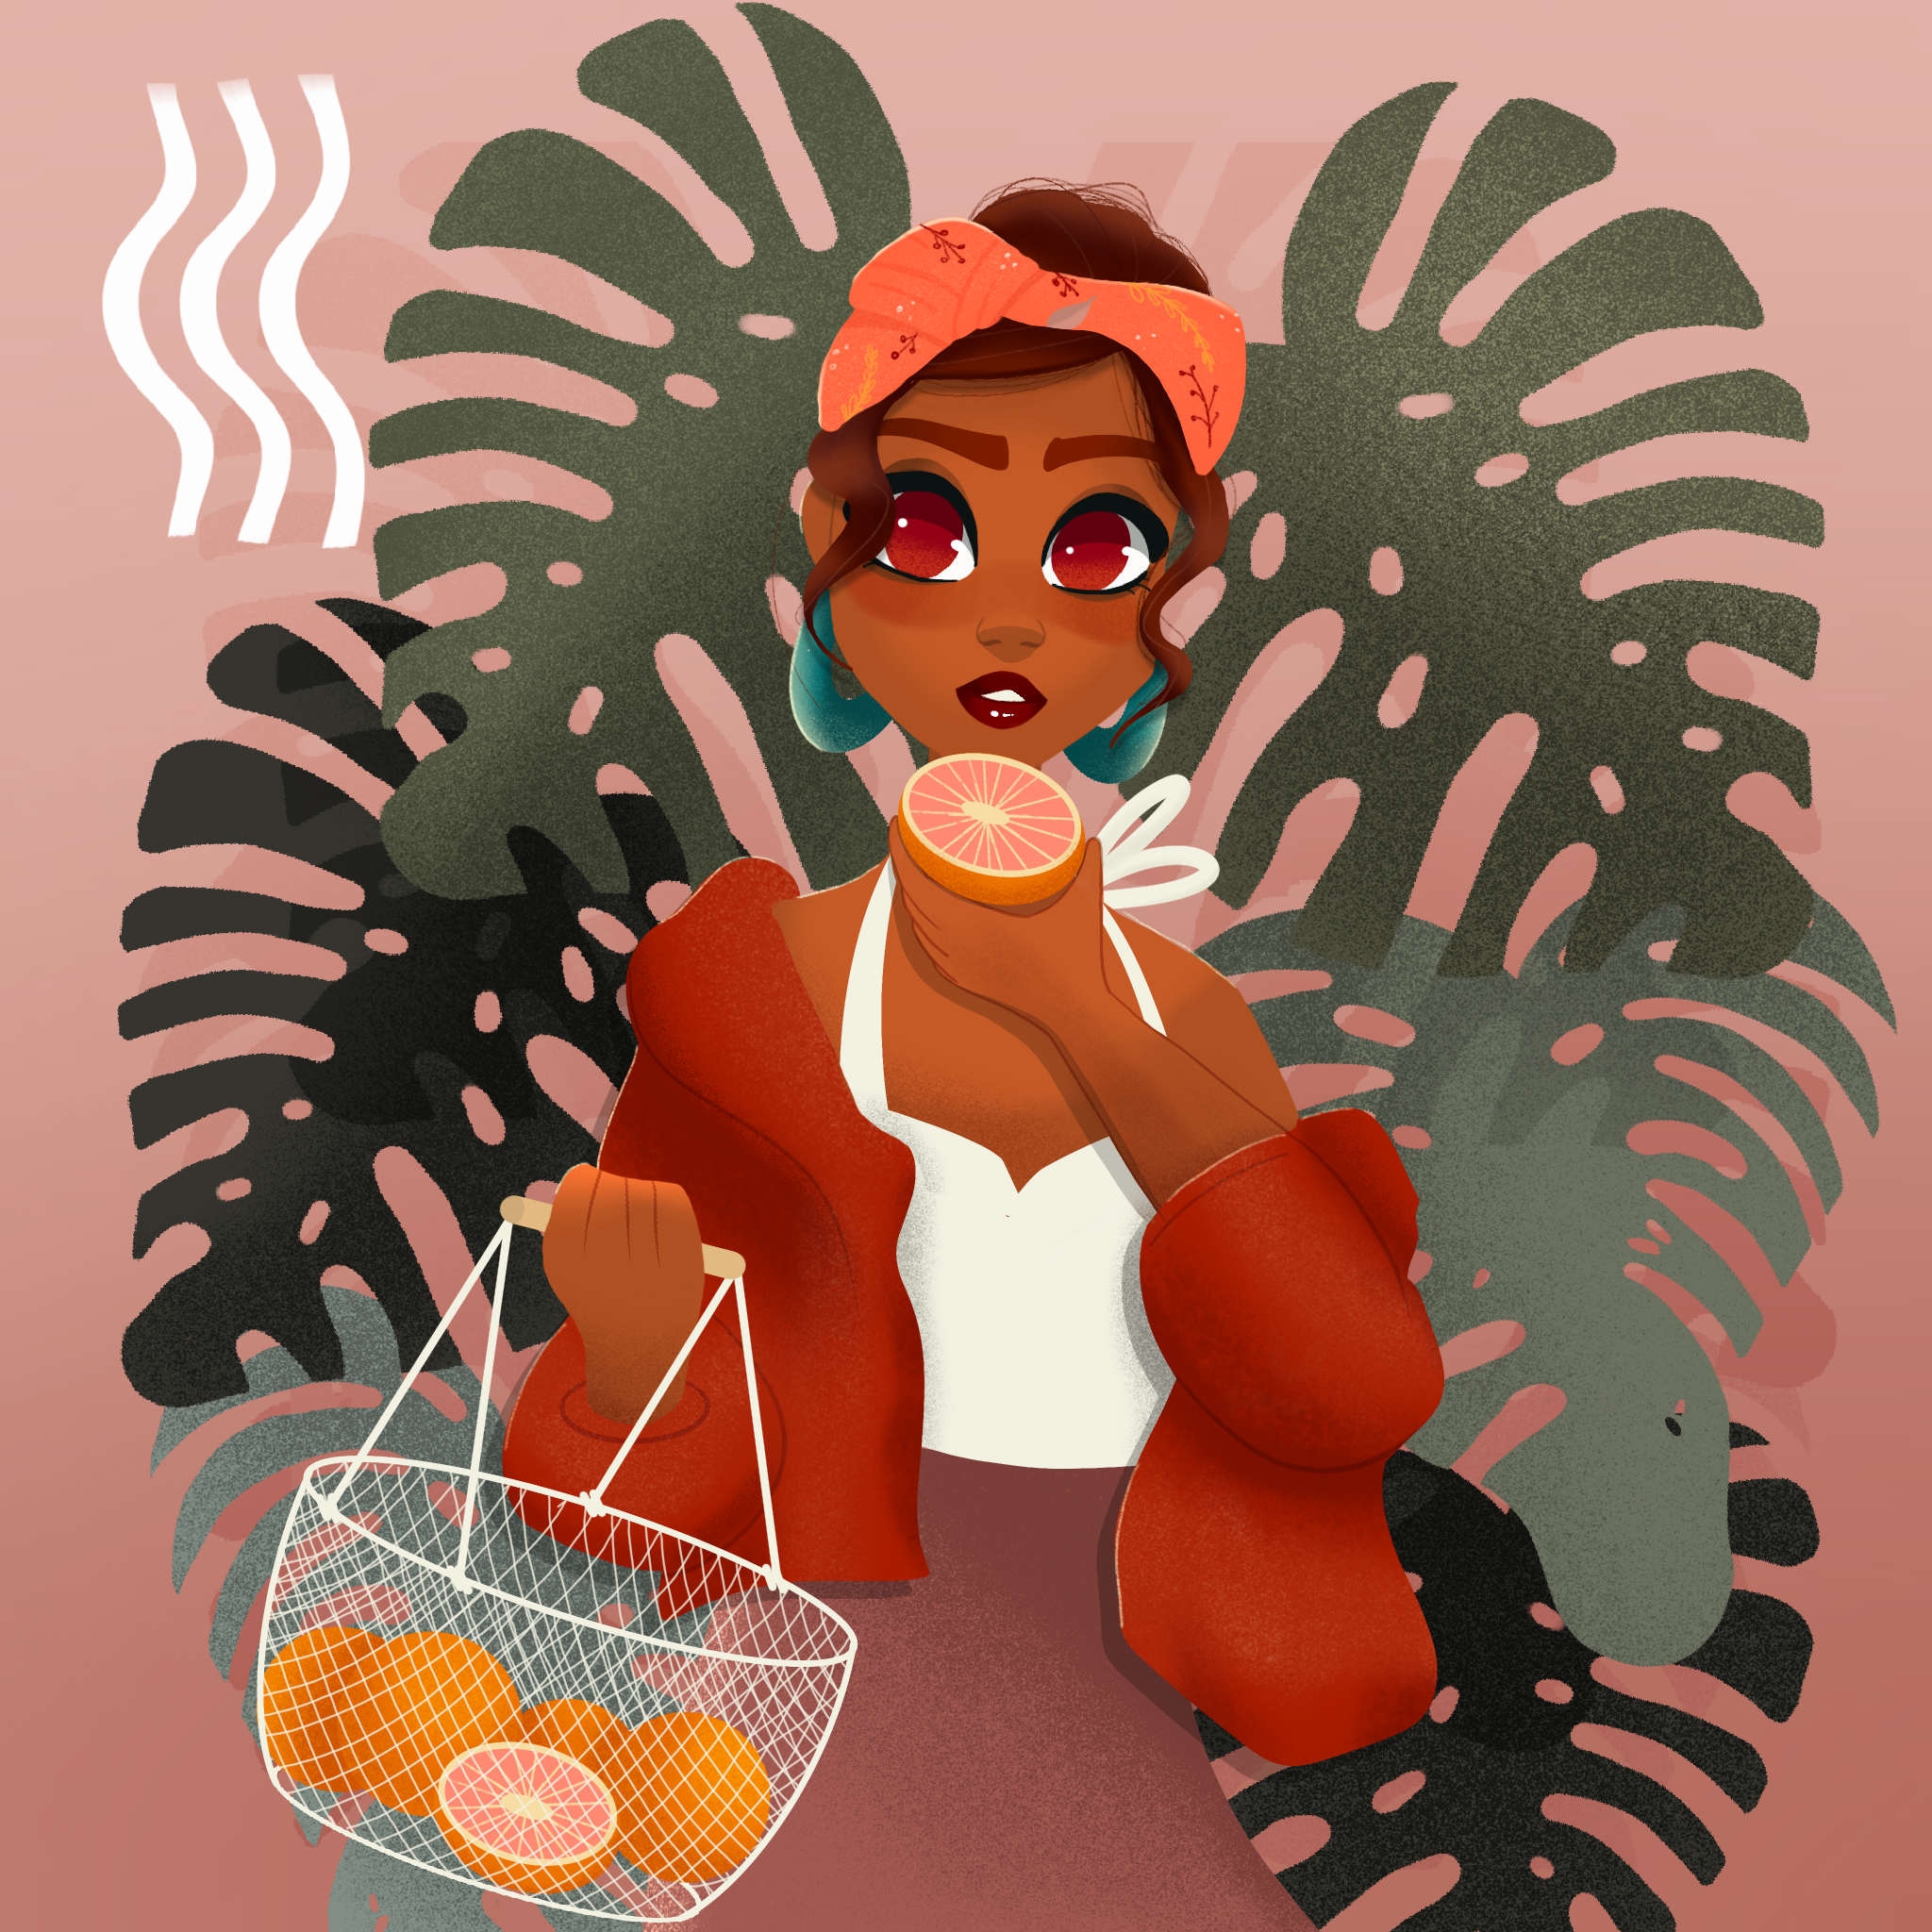 Grapefruit Girl